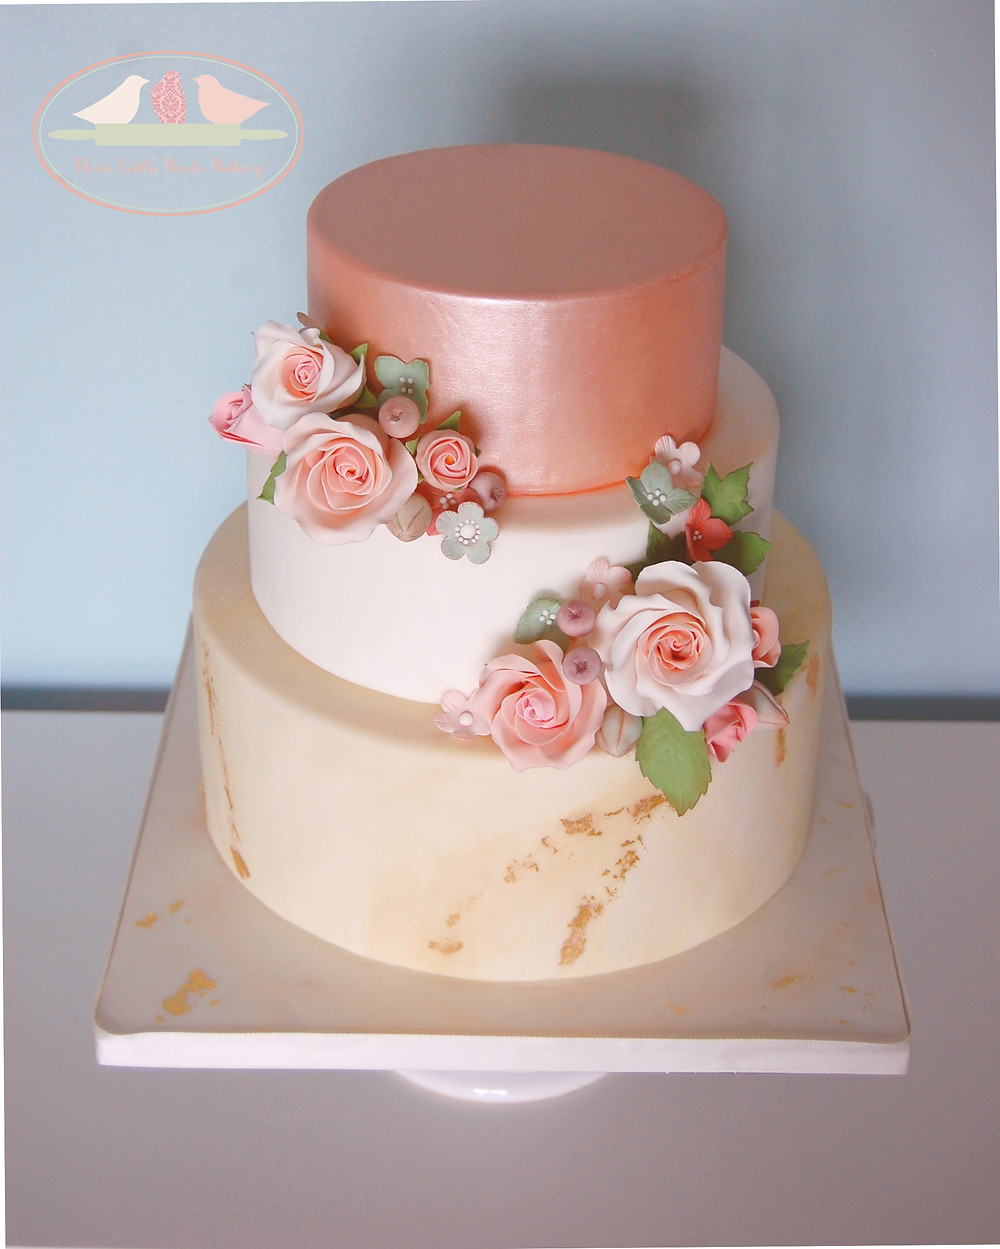 Wedding cakes in Keighley, West Yorkshire